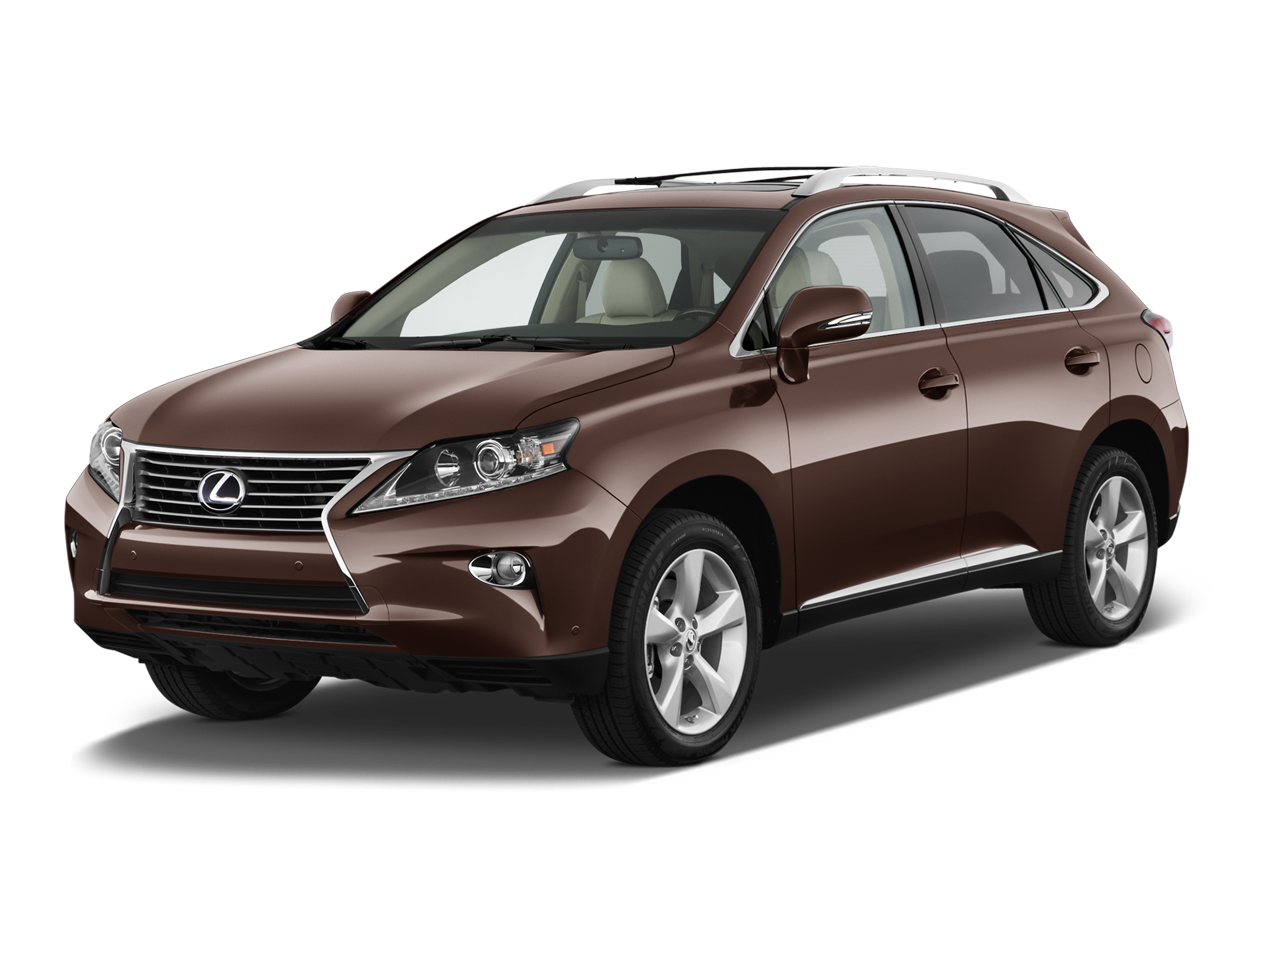 used 2015 lexus rx 350 near chantilly va pohanka lexus. Black Bedroom Furniture Sets. Home Design Ideas